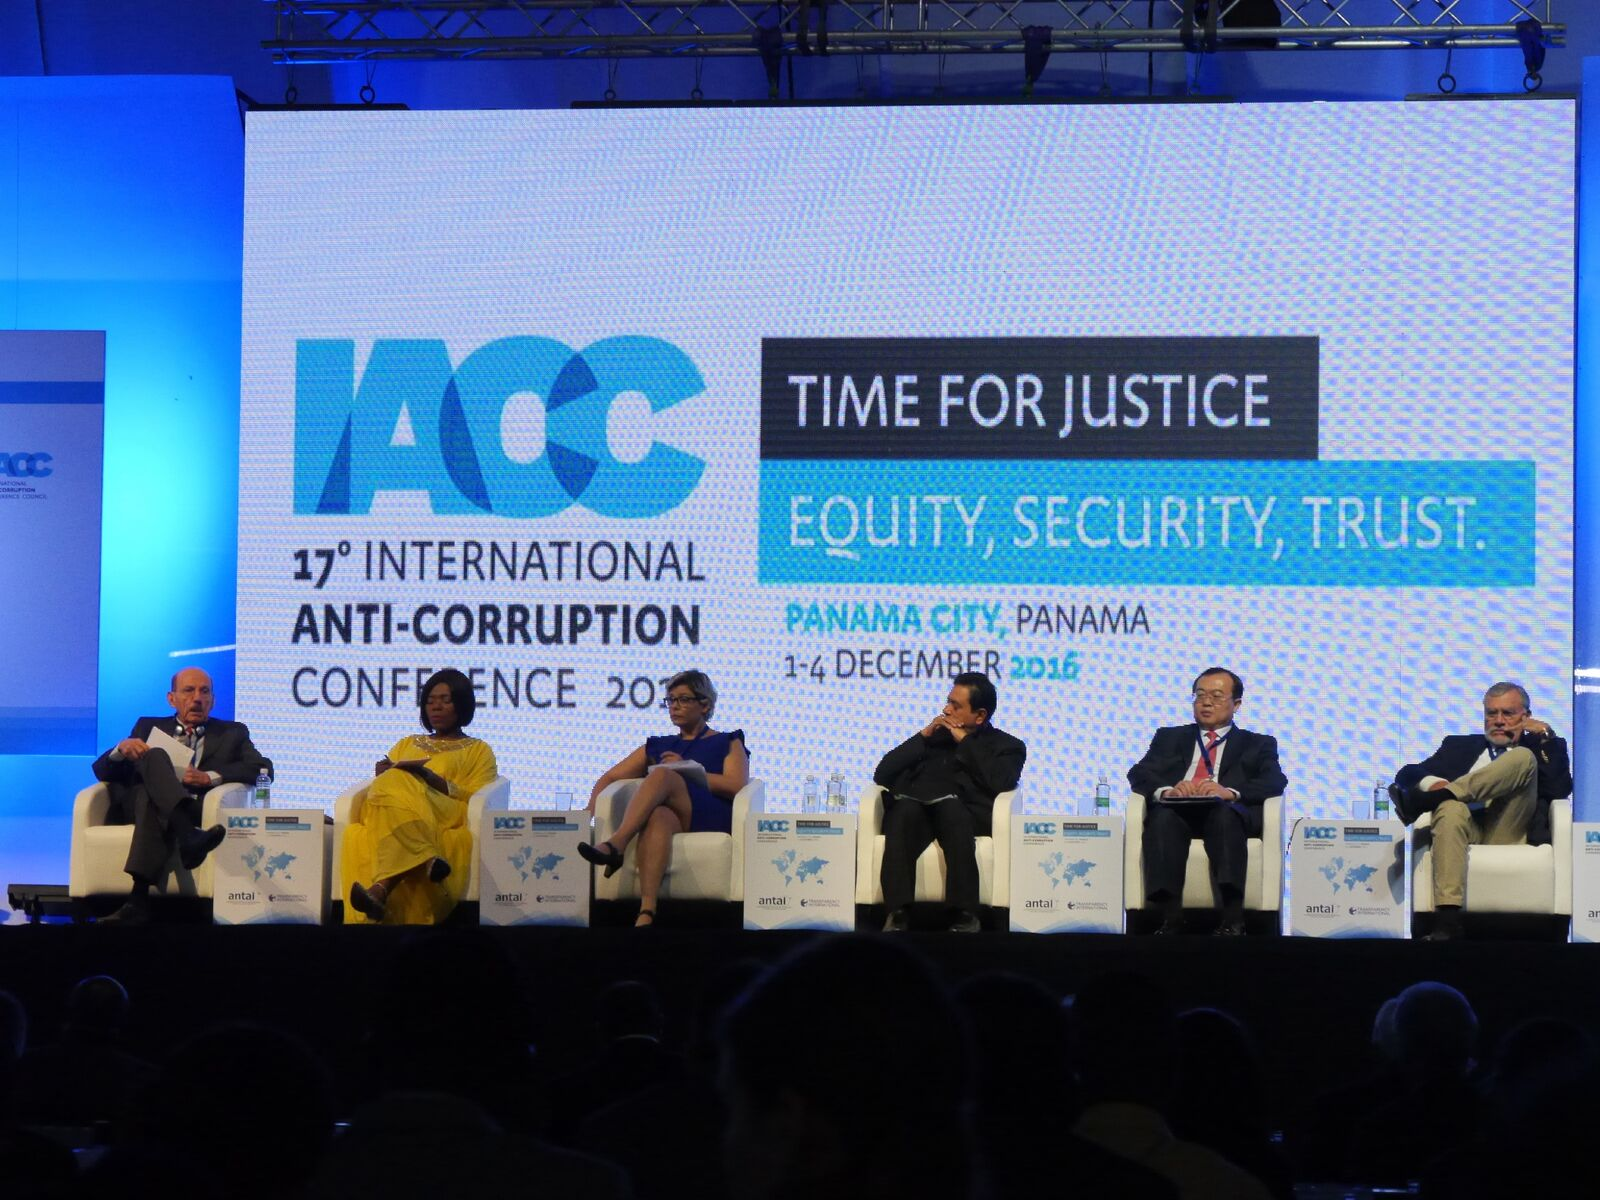 """In era of mistrust, panelists say it's """"Time for Justice"""""""